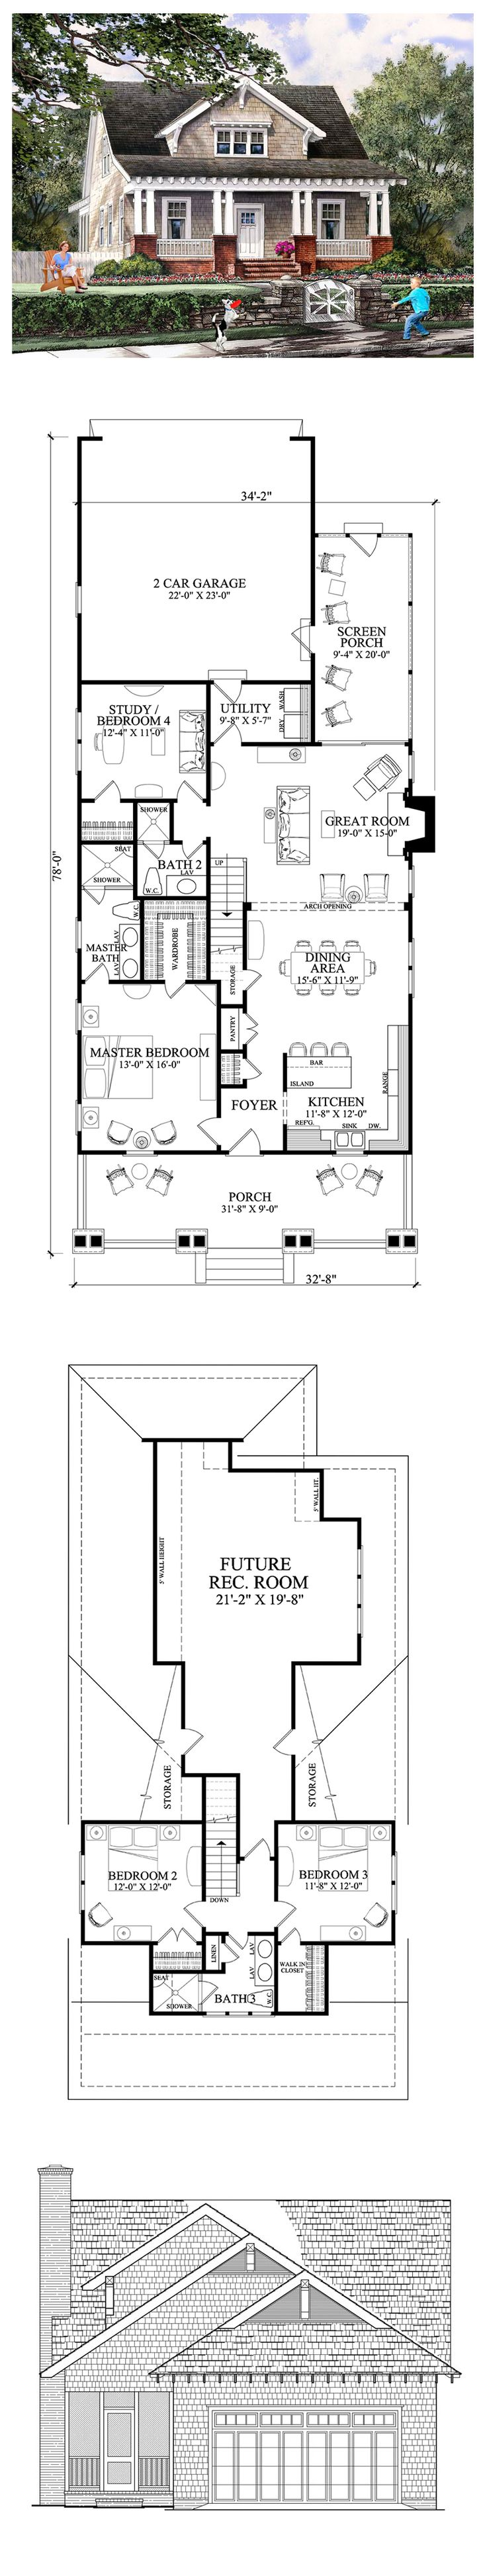 Teaching Kitchen Floor Plan Best 25 4 Bedroom House Plans Ideas On Pinterest  House Plans